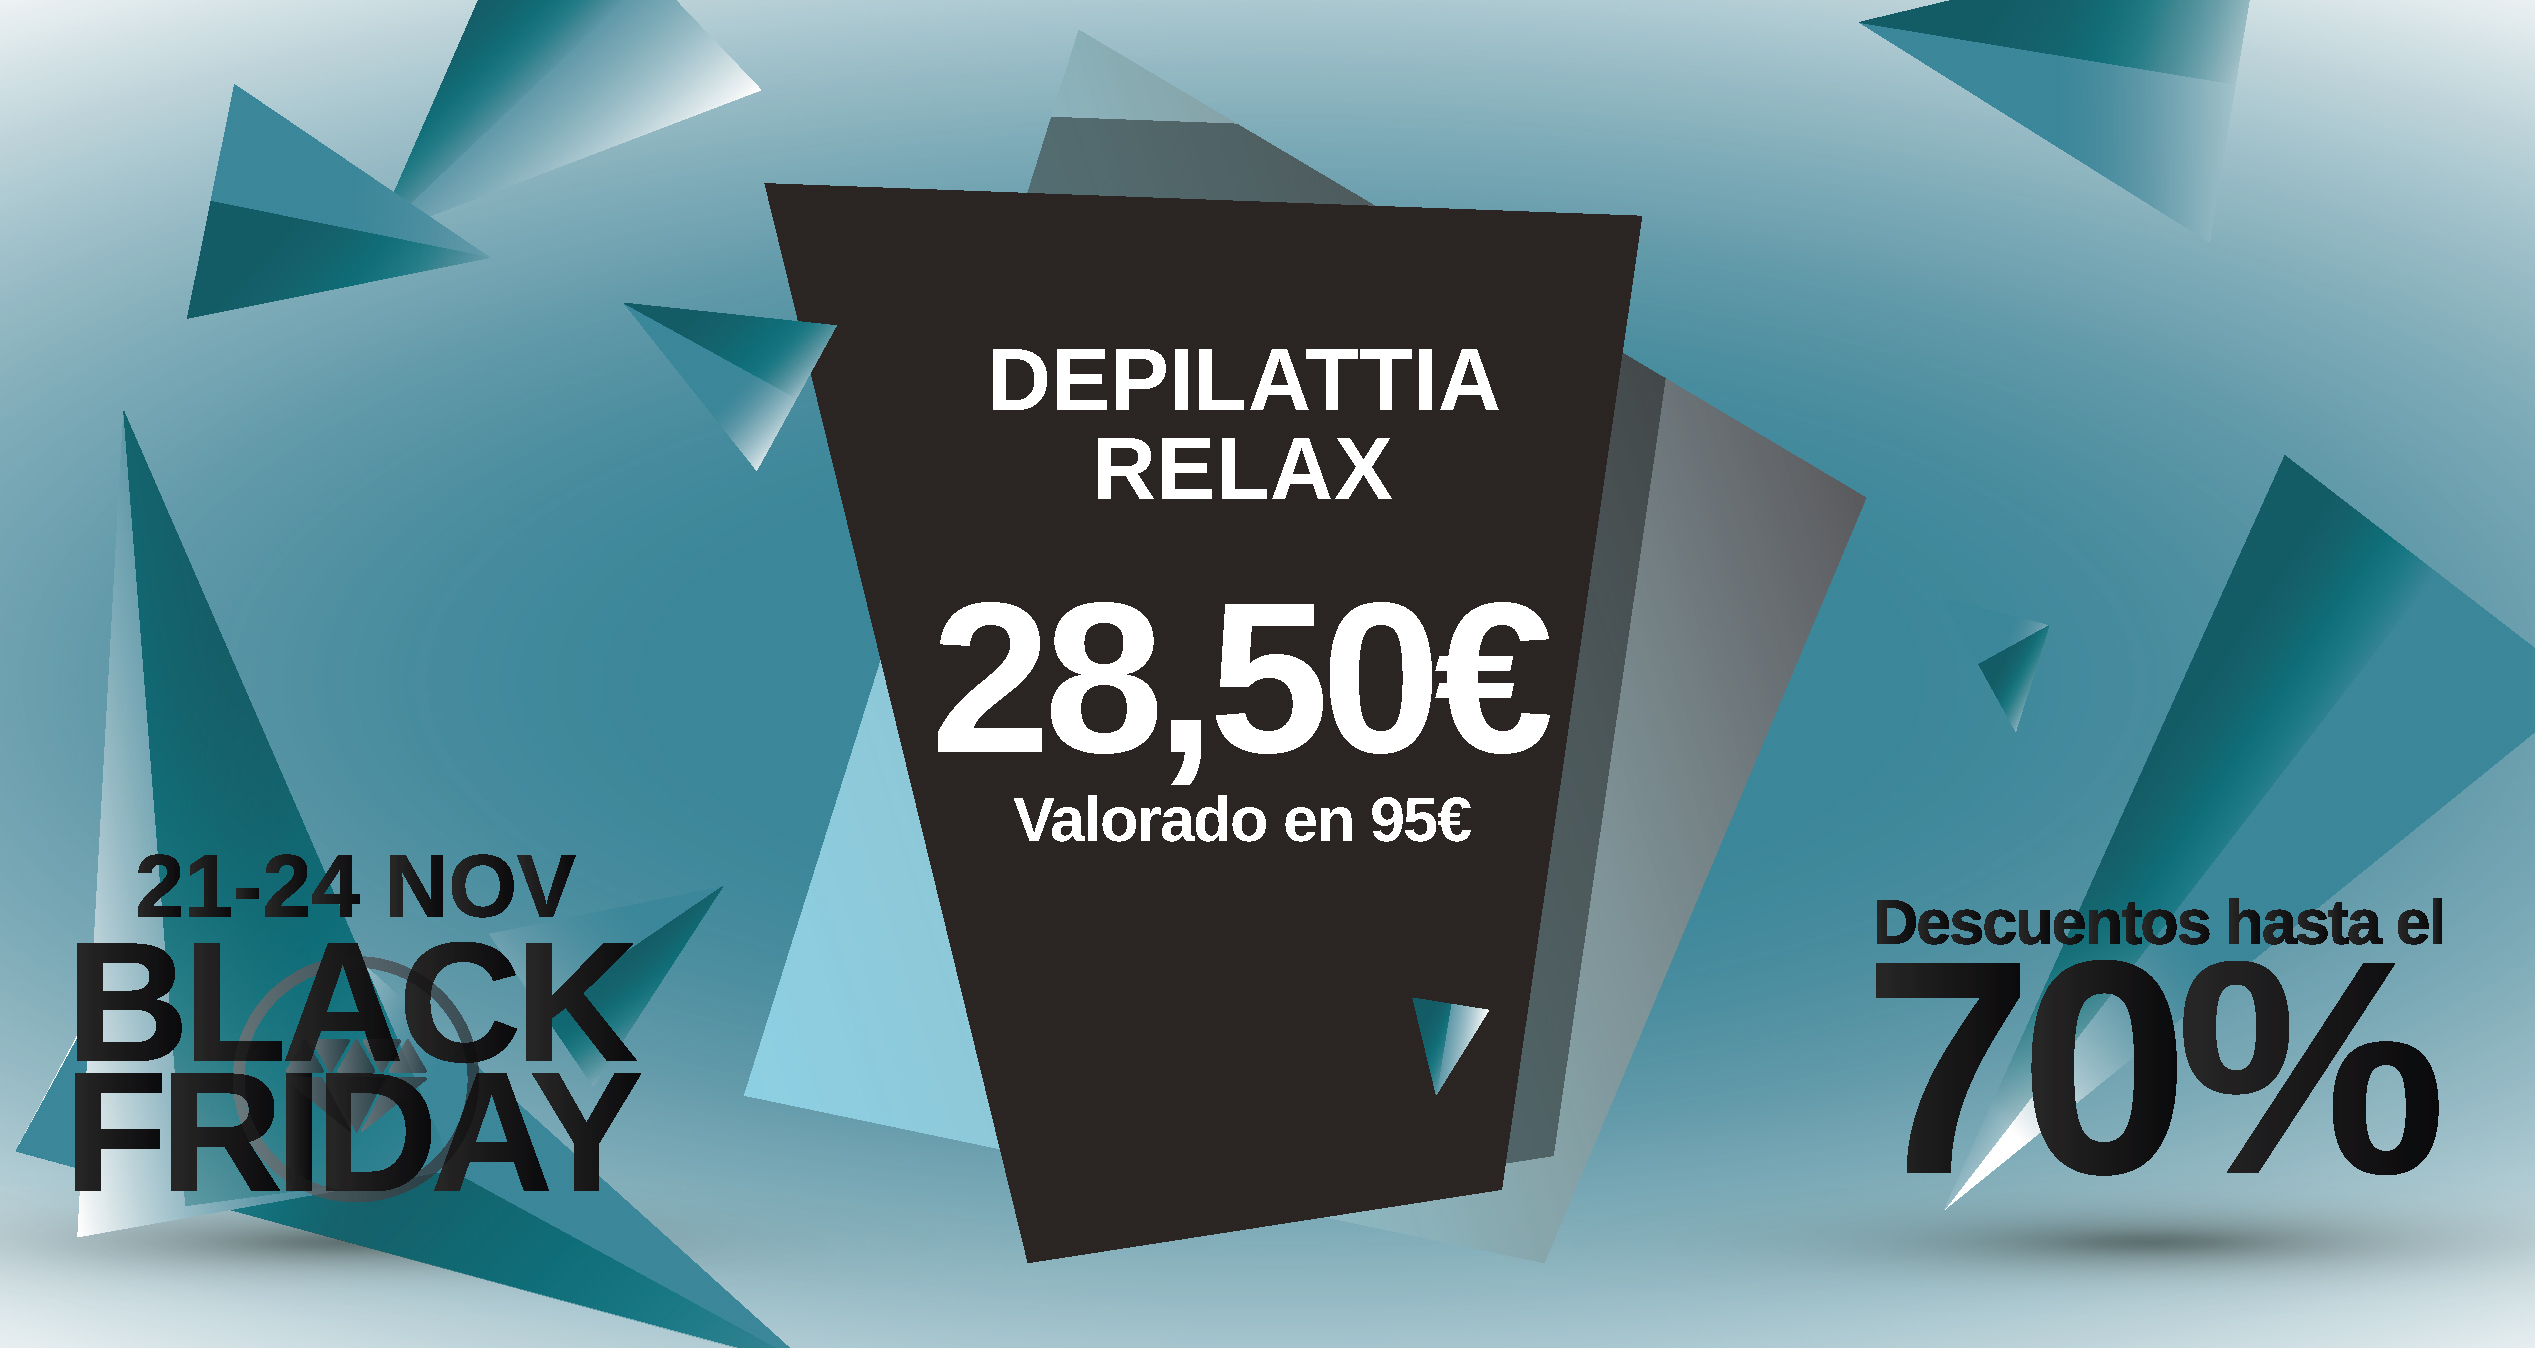 AAFF-Black-friday-depilattia-spa_relax-FACEBOOK